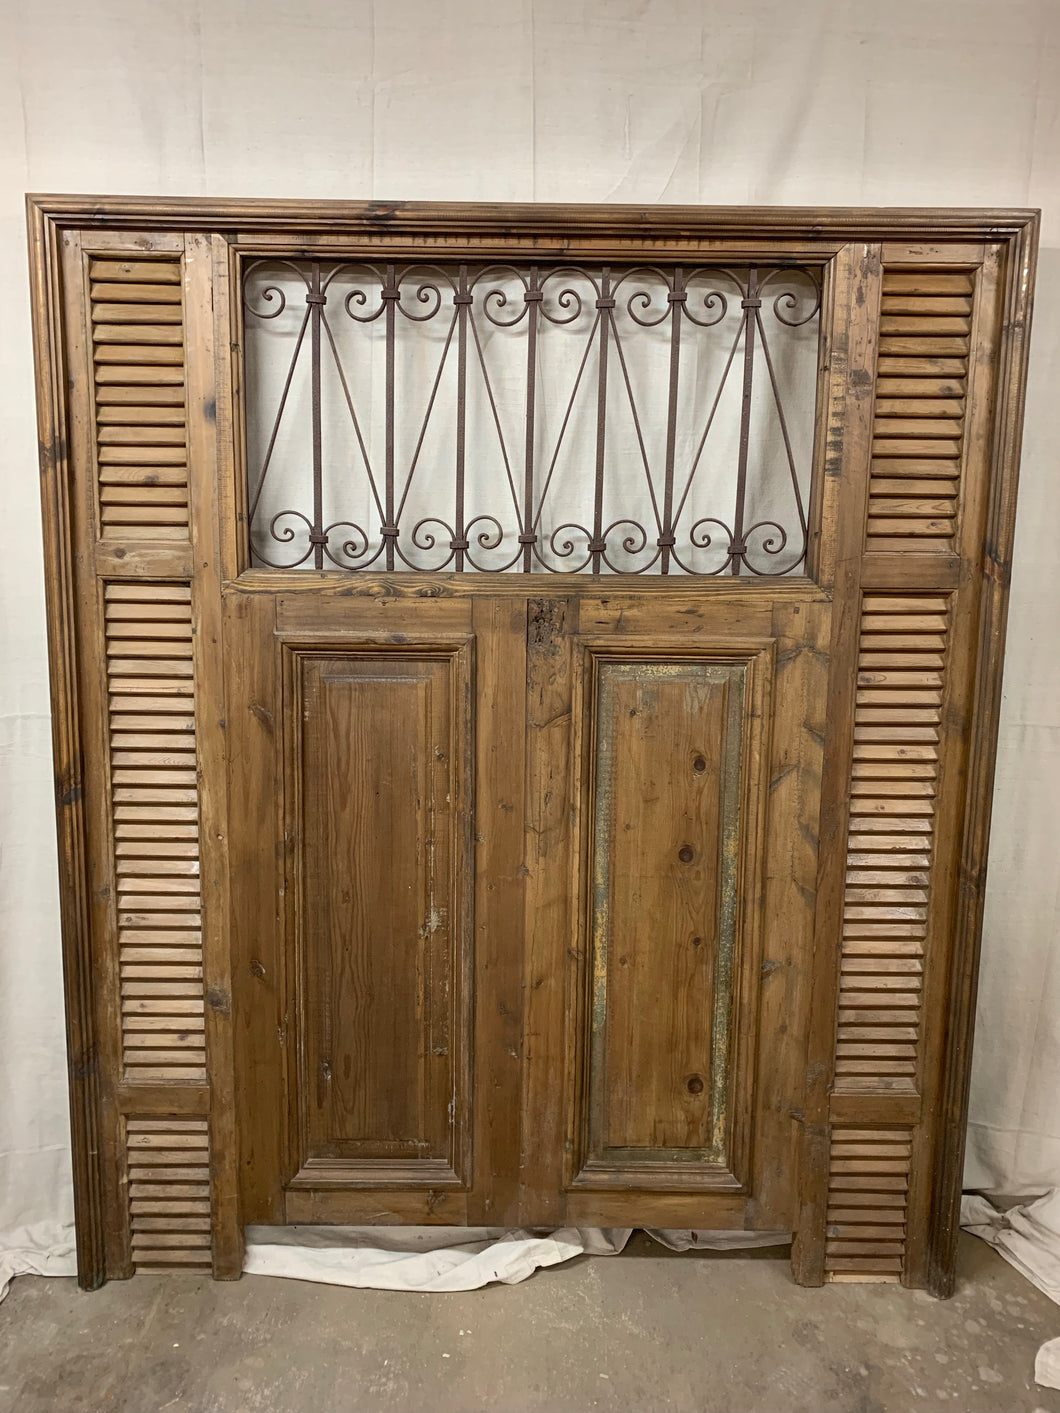 Queen Headboard- French Iron, doors & Shutters